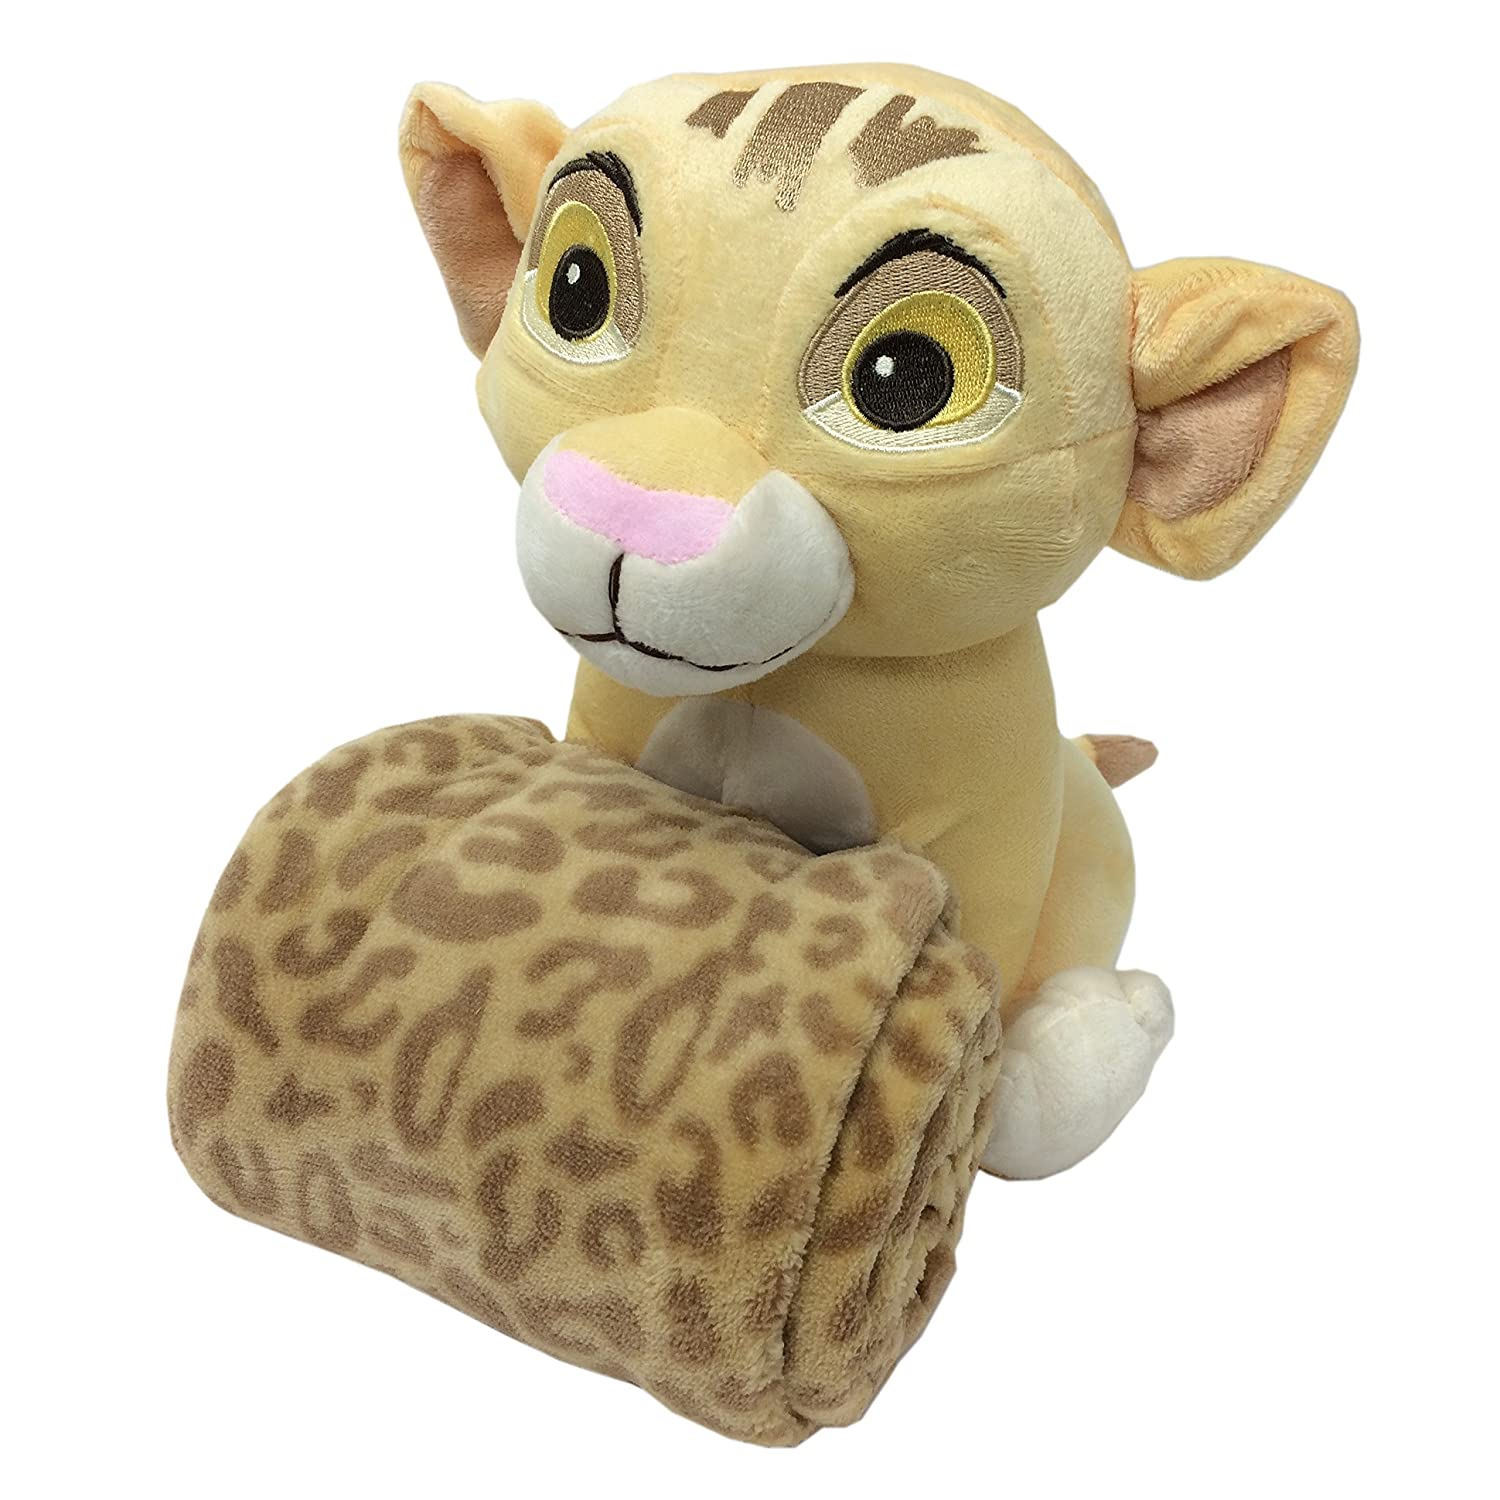 Disney Lion King Simba's Wild Adventure Super Soft Plush and Blanket Gift Set, Ivory, Brown, Butter Crown Crafts Inc 6804833